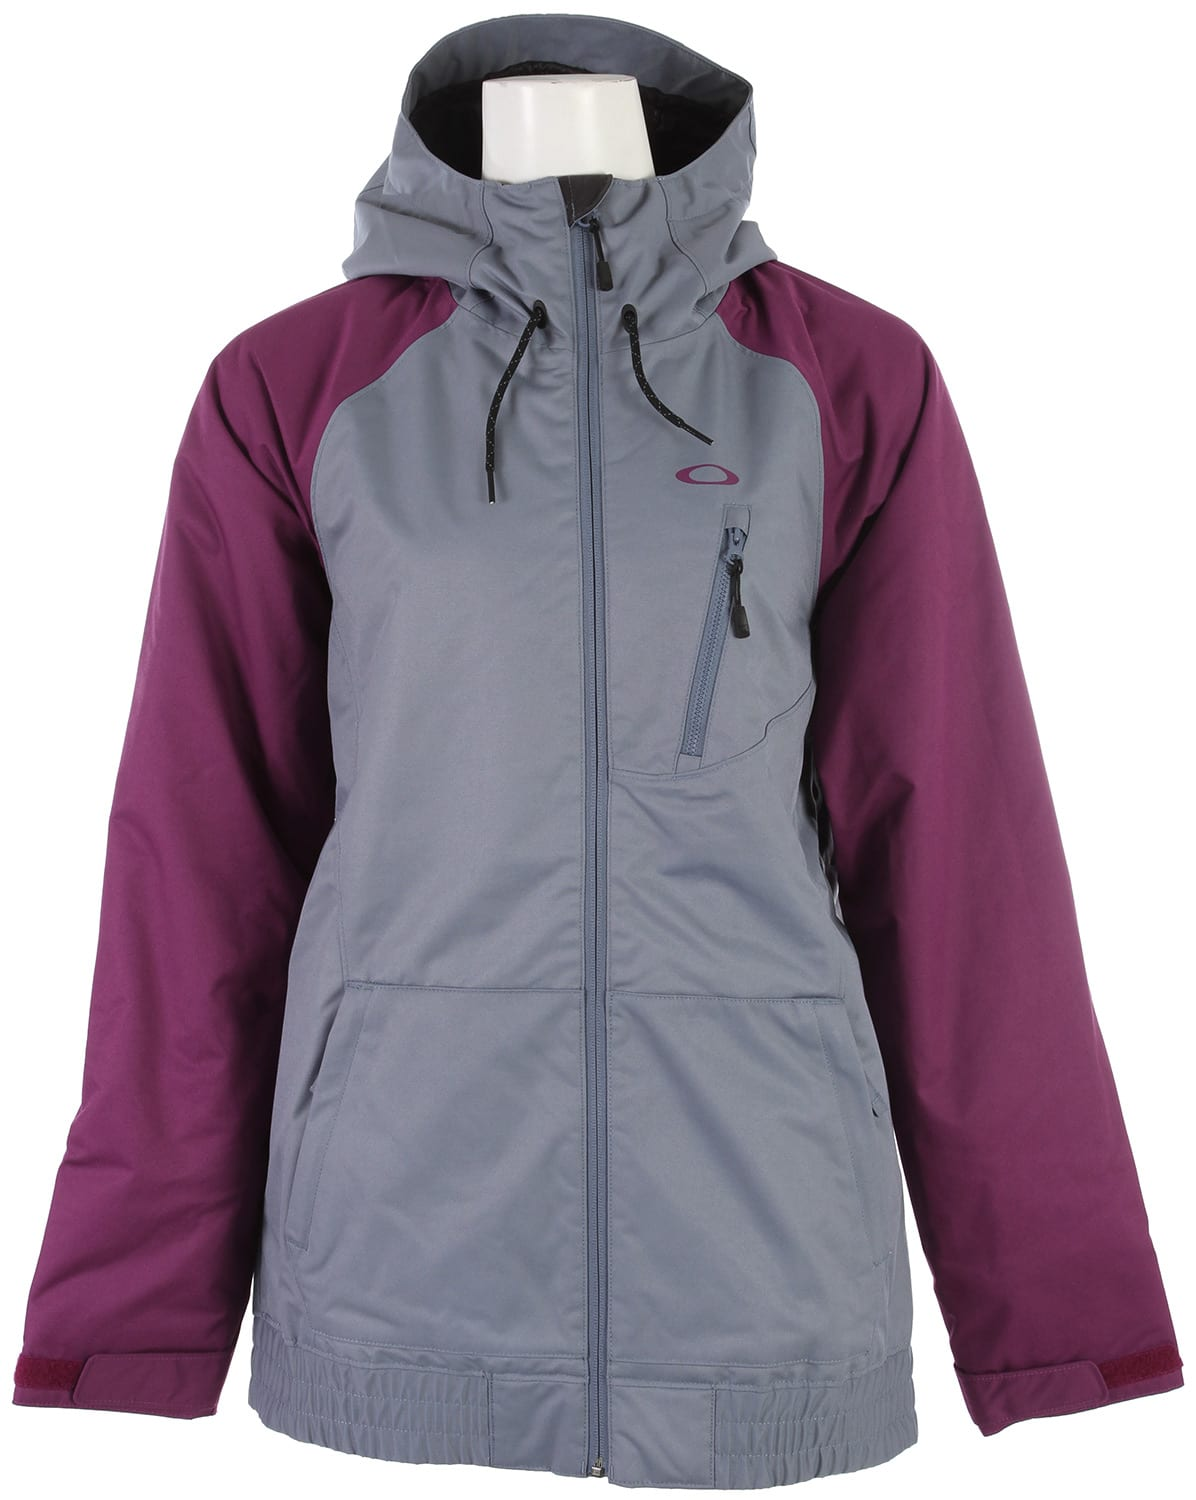 Womens snowboarding coat